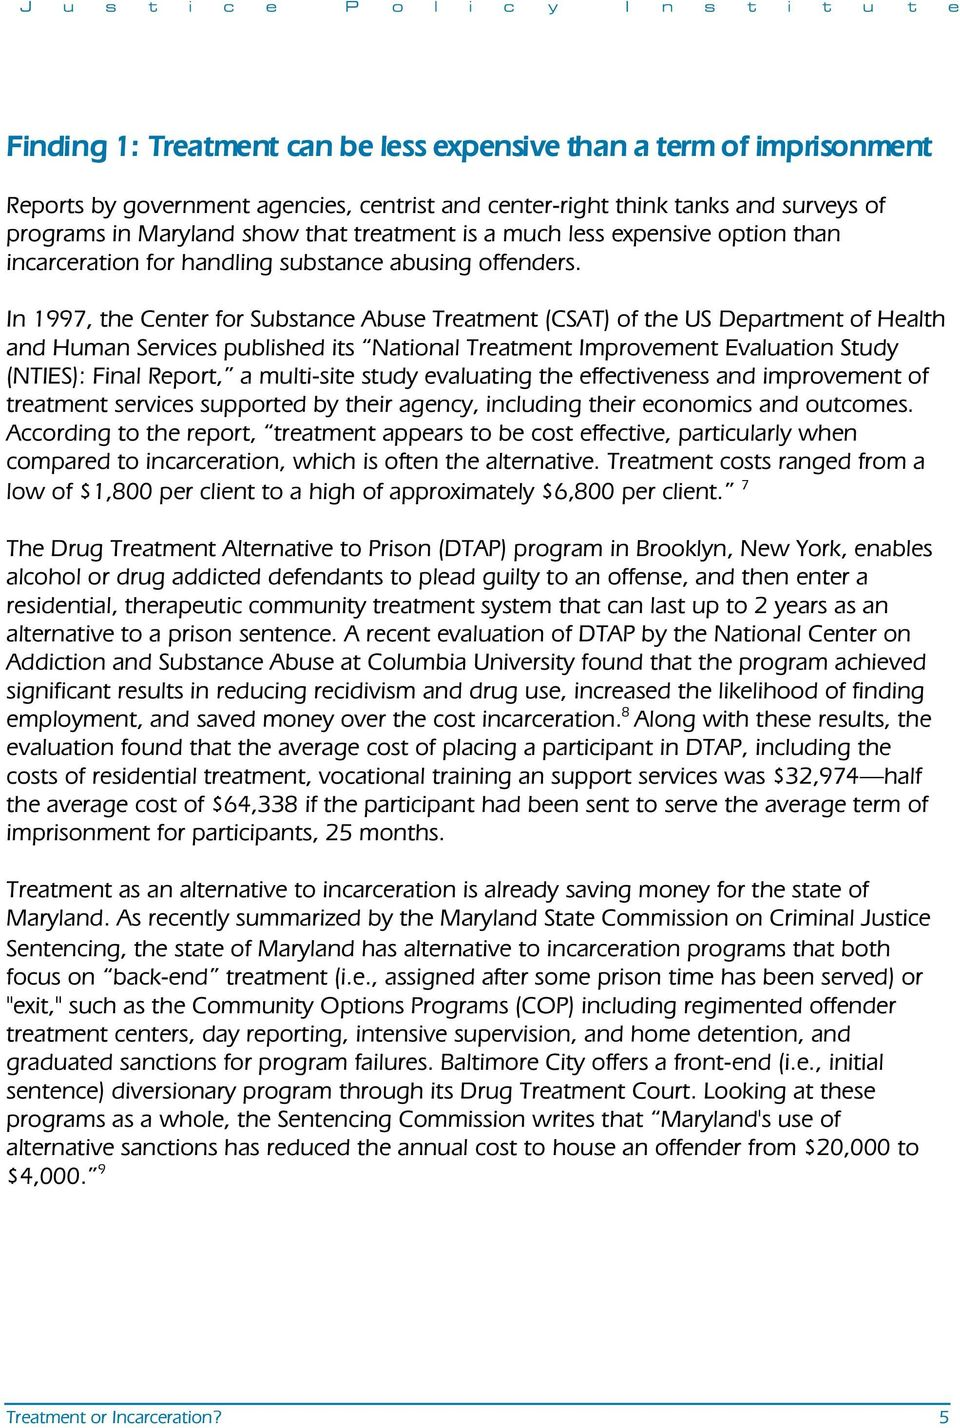 In 1997, the Center for Substance Abuse Treatment (CSAT) of the US Department of Health and Human Services published its National Treatment Improvement Evaluation Study (NTIES): Final Report, a